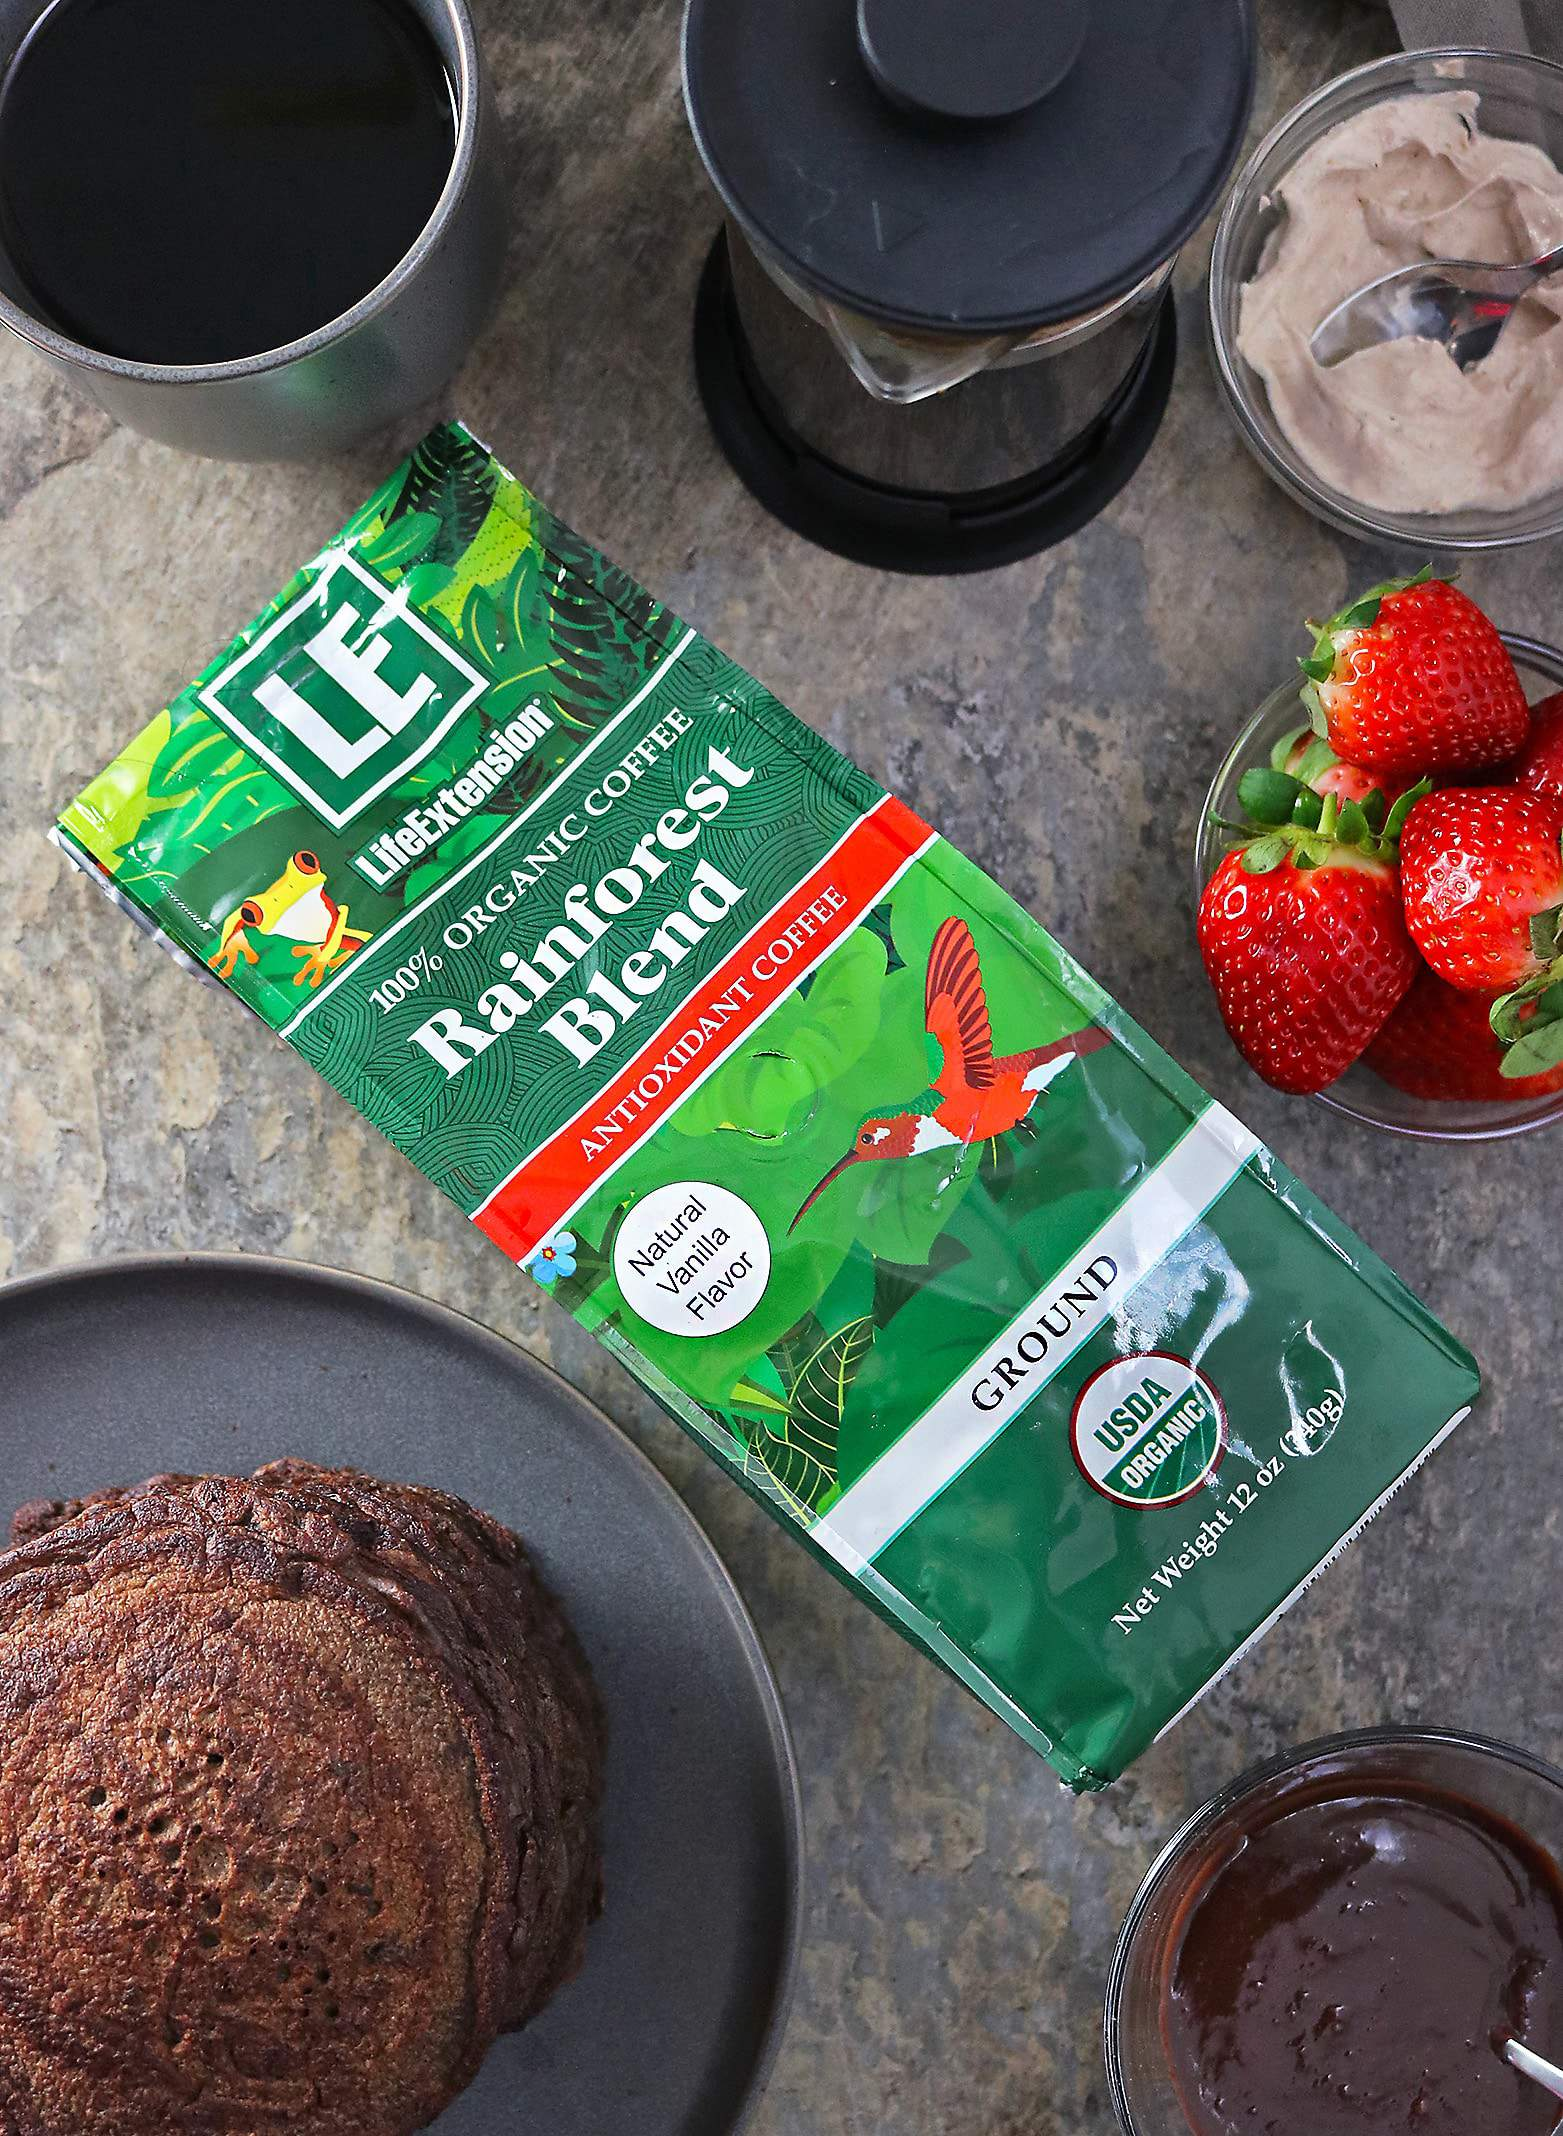 Life Extension Organic Antioxidant Rainforest Blend Coffee and Chocolate Pancakes For Breakfast